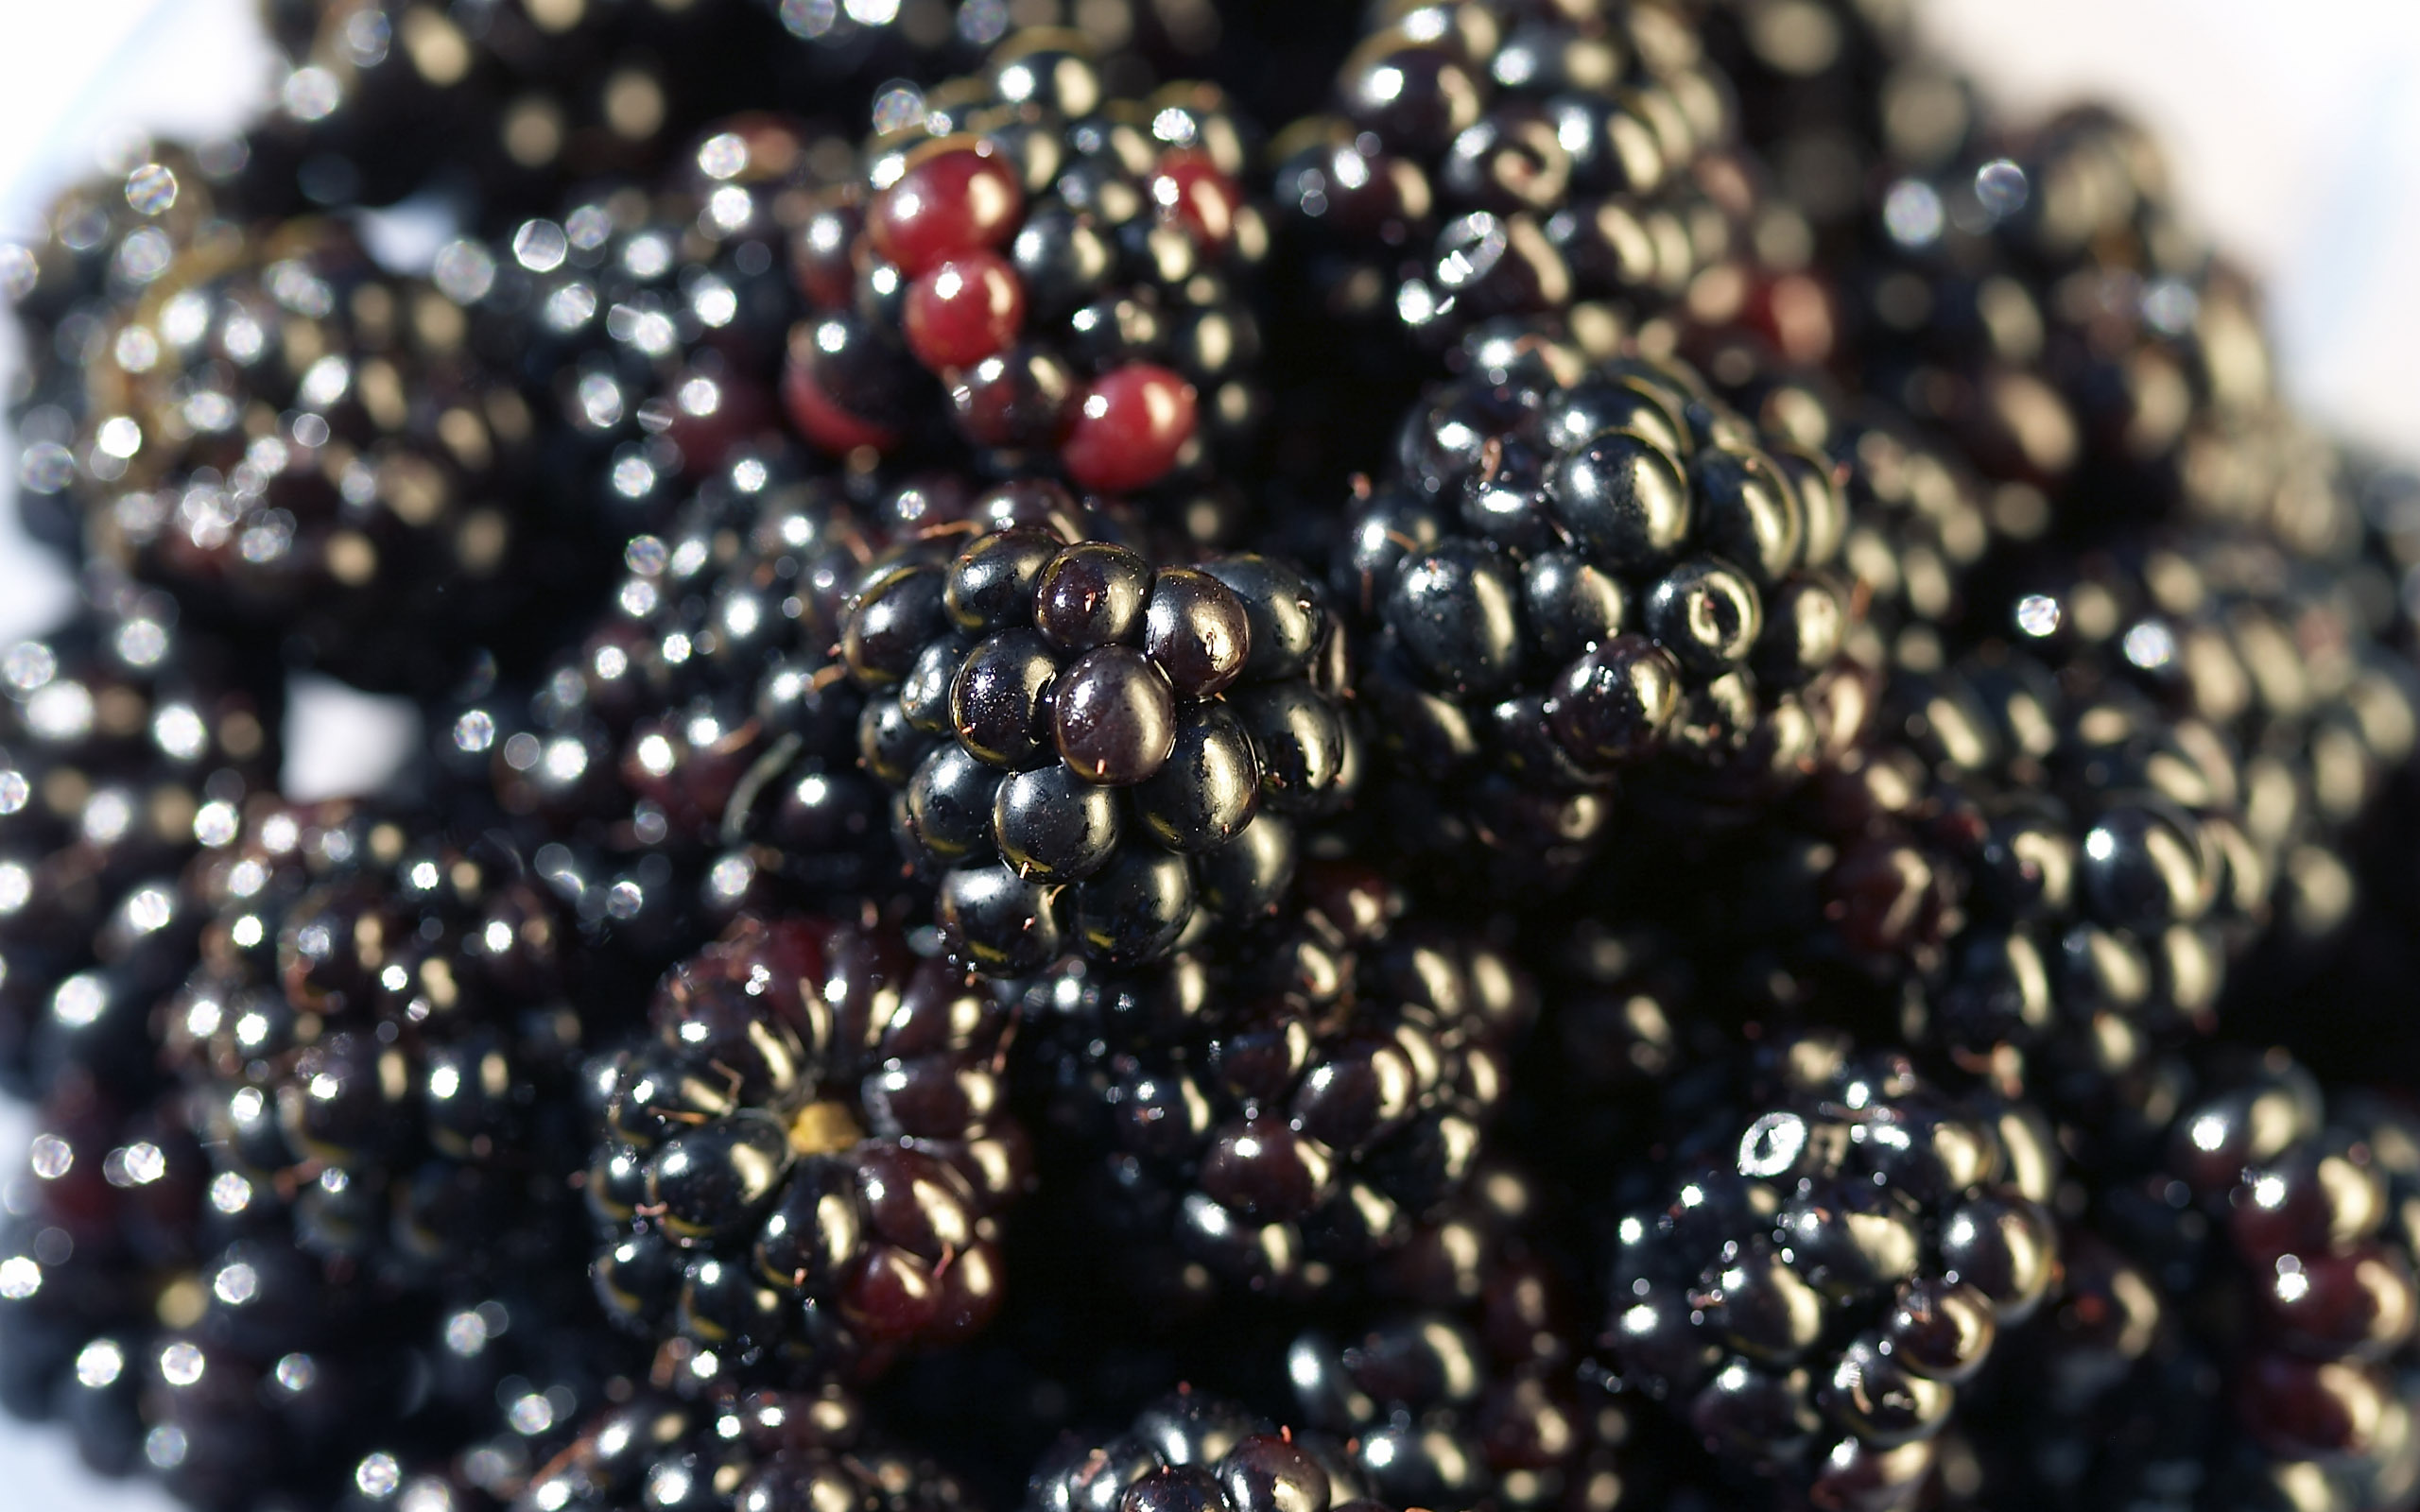 10834 download wallpaper Fruits, Food, Background, Berries, Blackberry screensavers and pictures for free